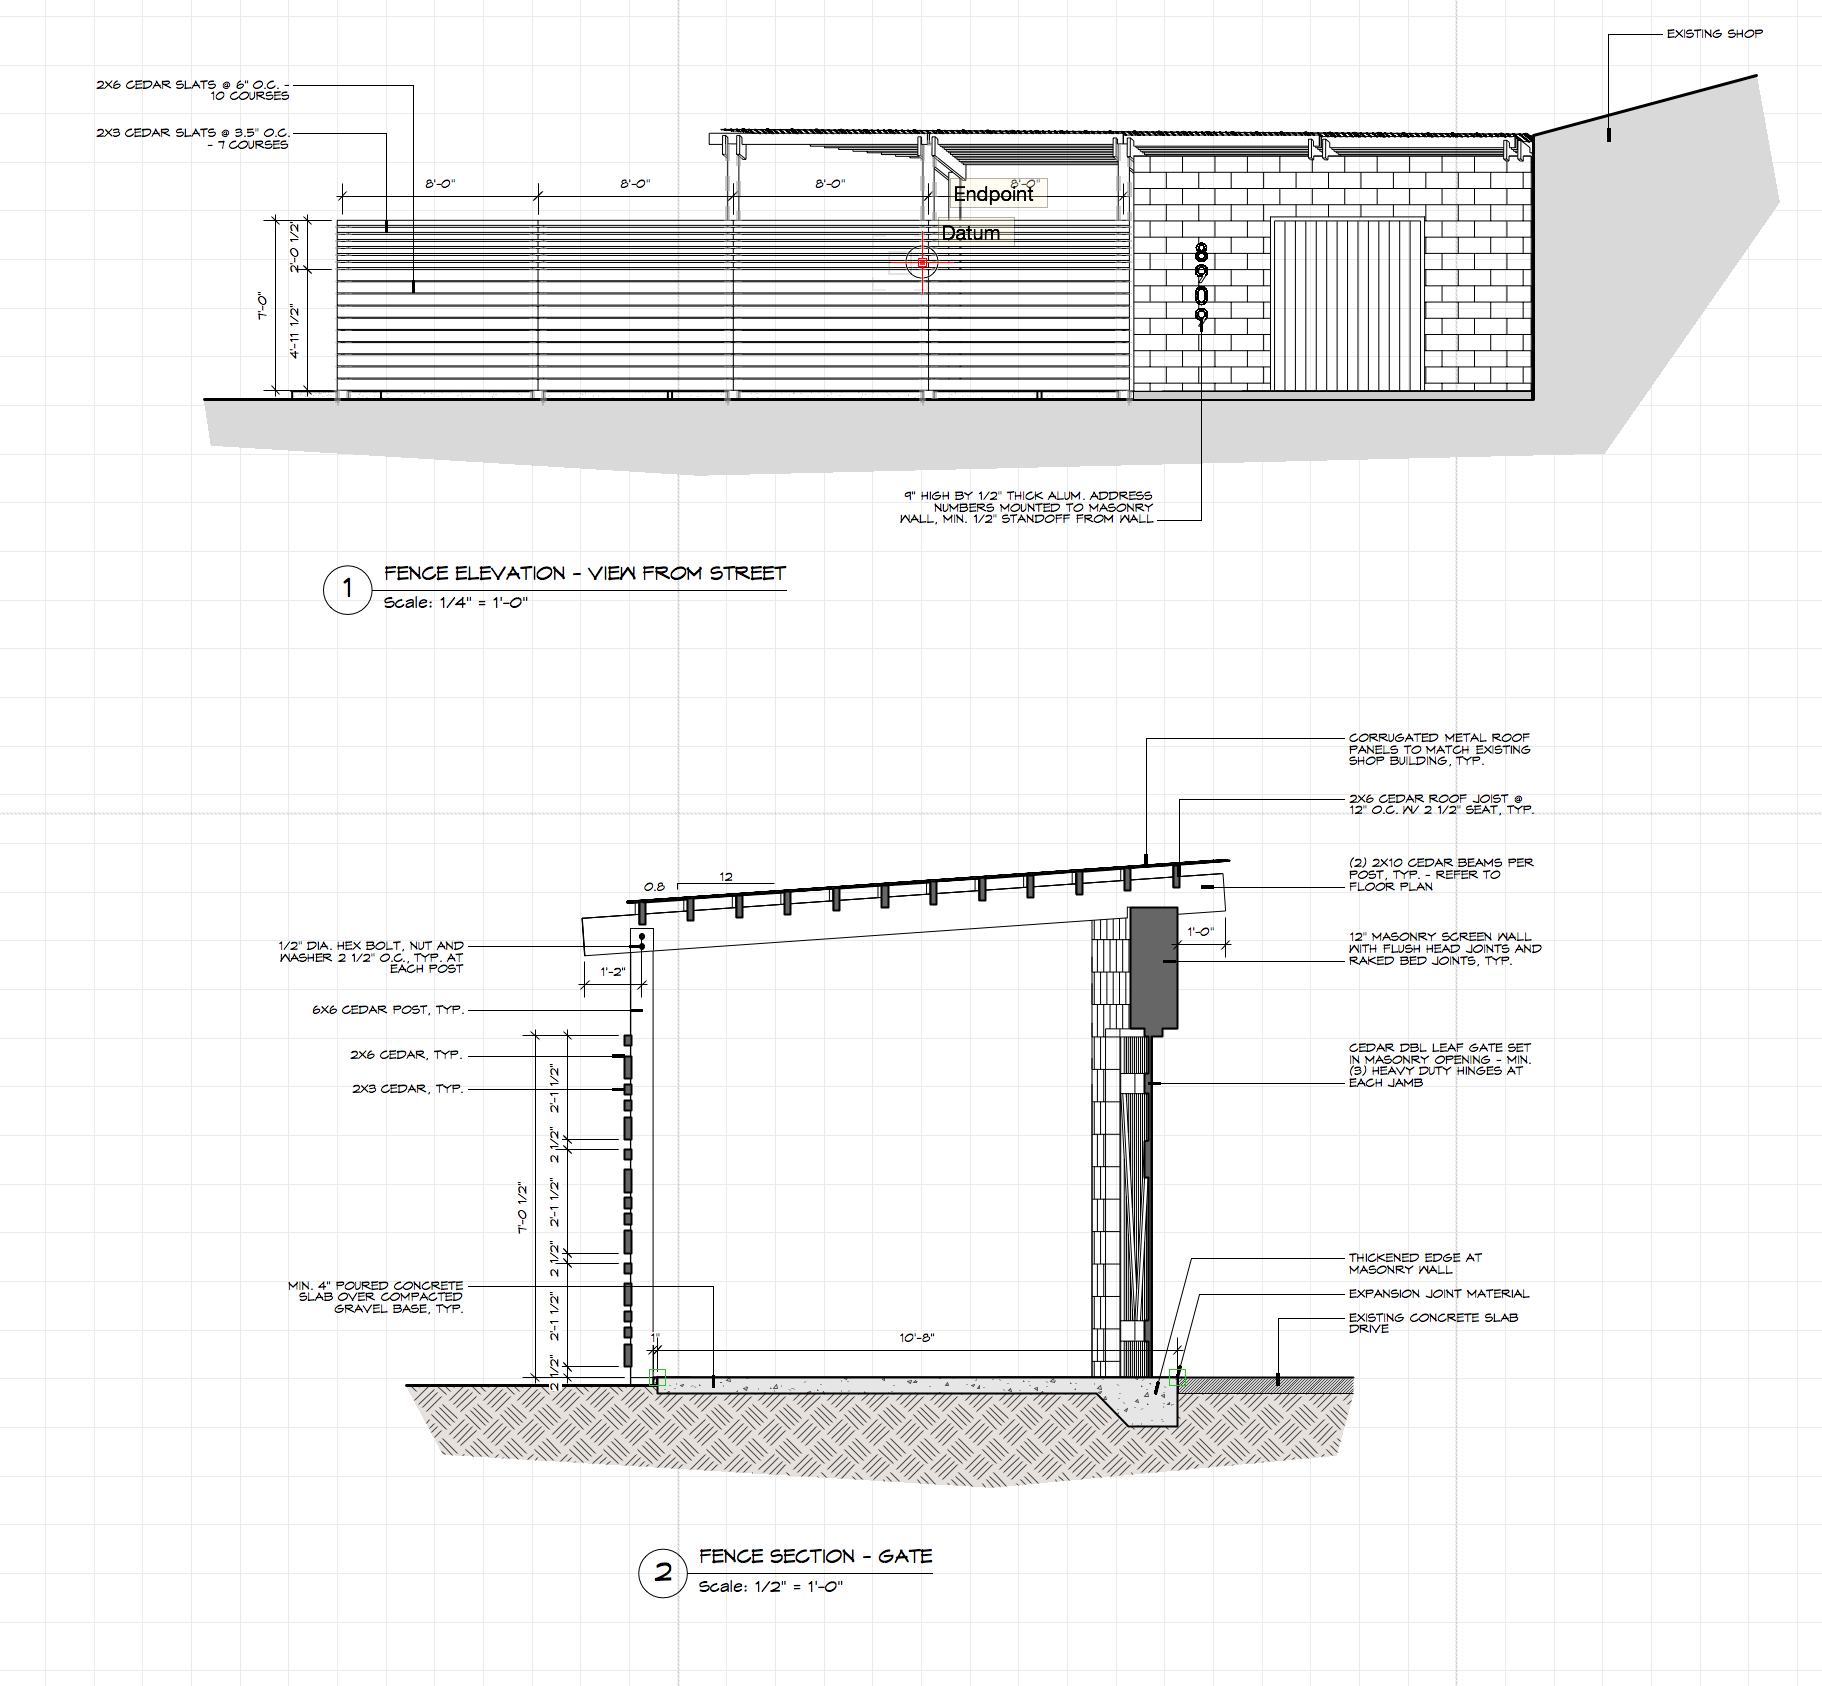 Excerpt of construction drawings for a modern entry screen wall and covered walk for a single family residence.